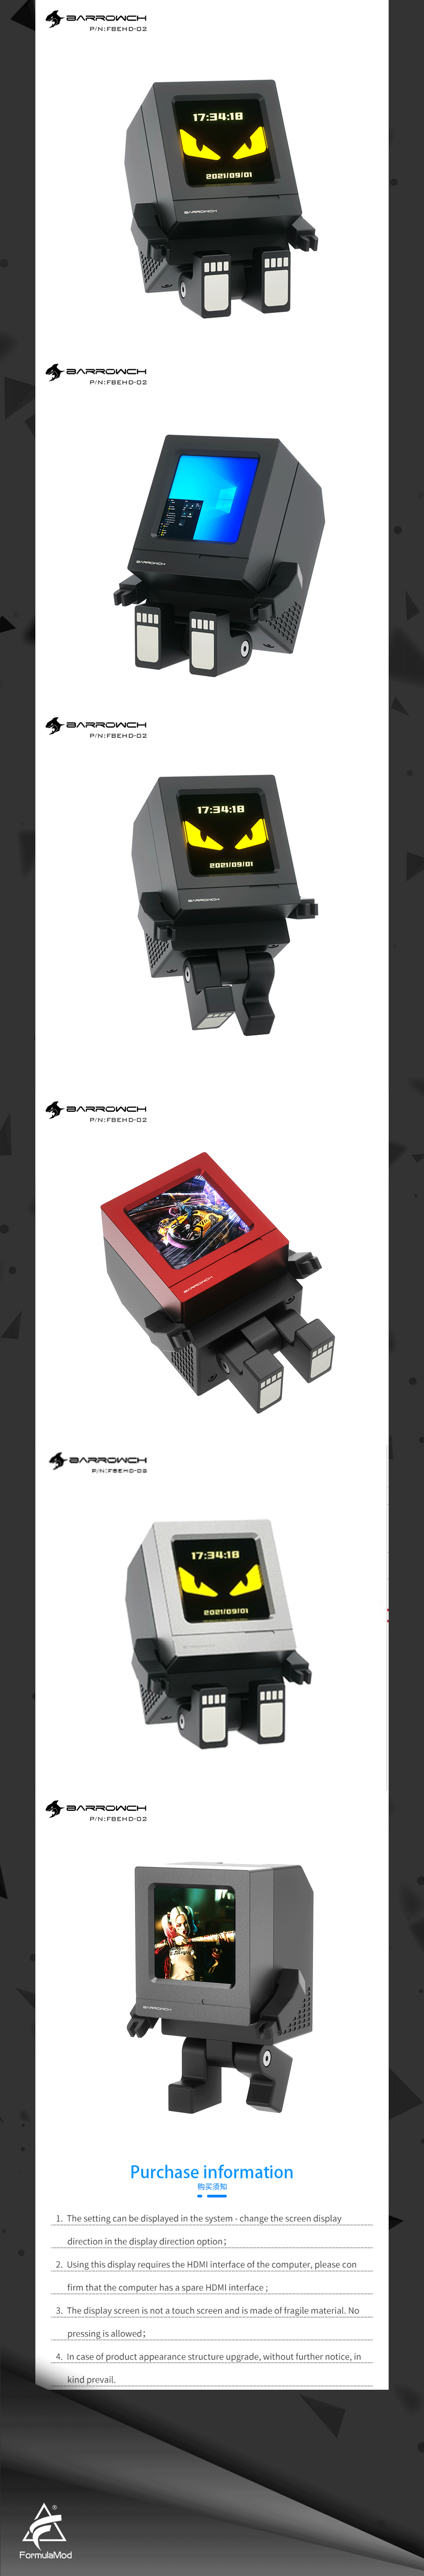 Barrowch FBEHD-02 Limited Edition Cyclops MINI Independent Expansion Display, 2.9 Inch For PC Hardware Sync Temperature Monitor